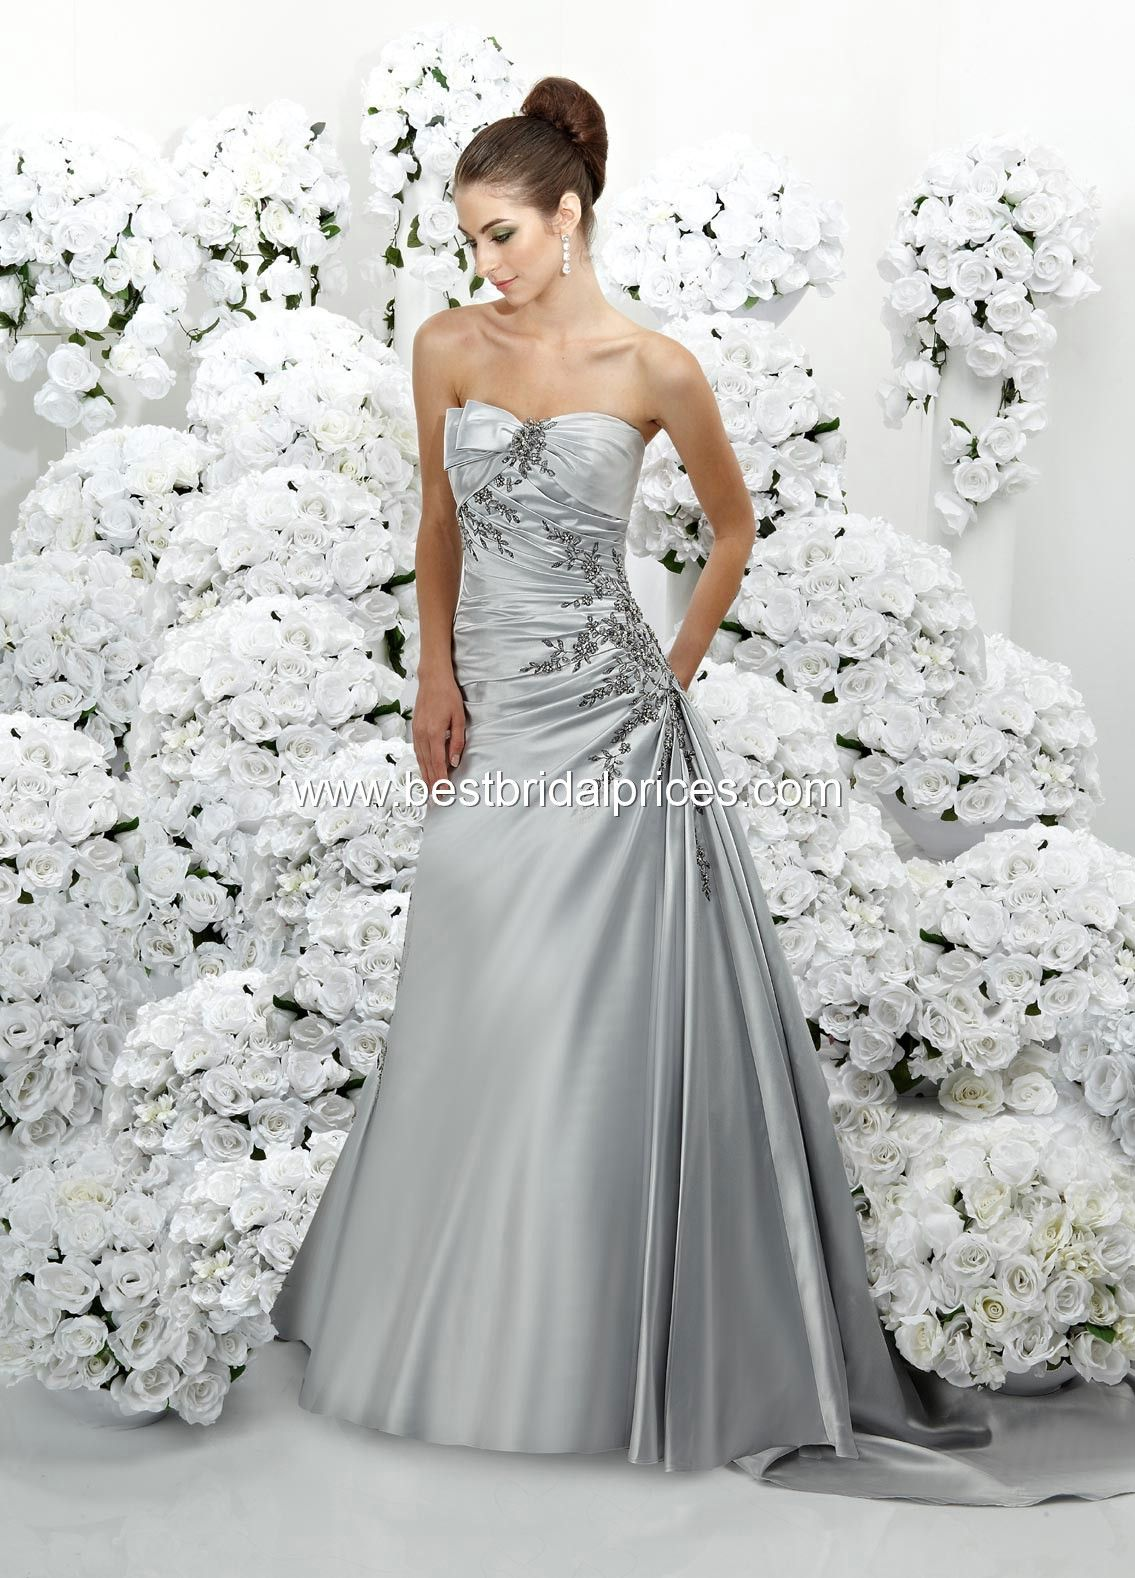 Platinum silver wedding dress diy crafts pinterest for Silver and white wedding dresses